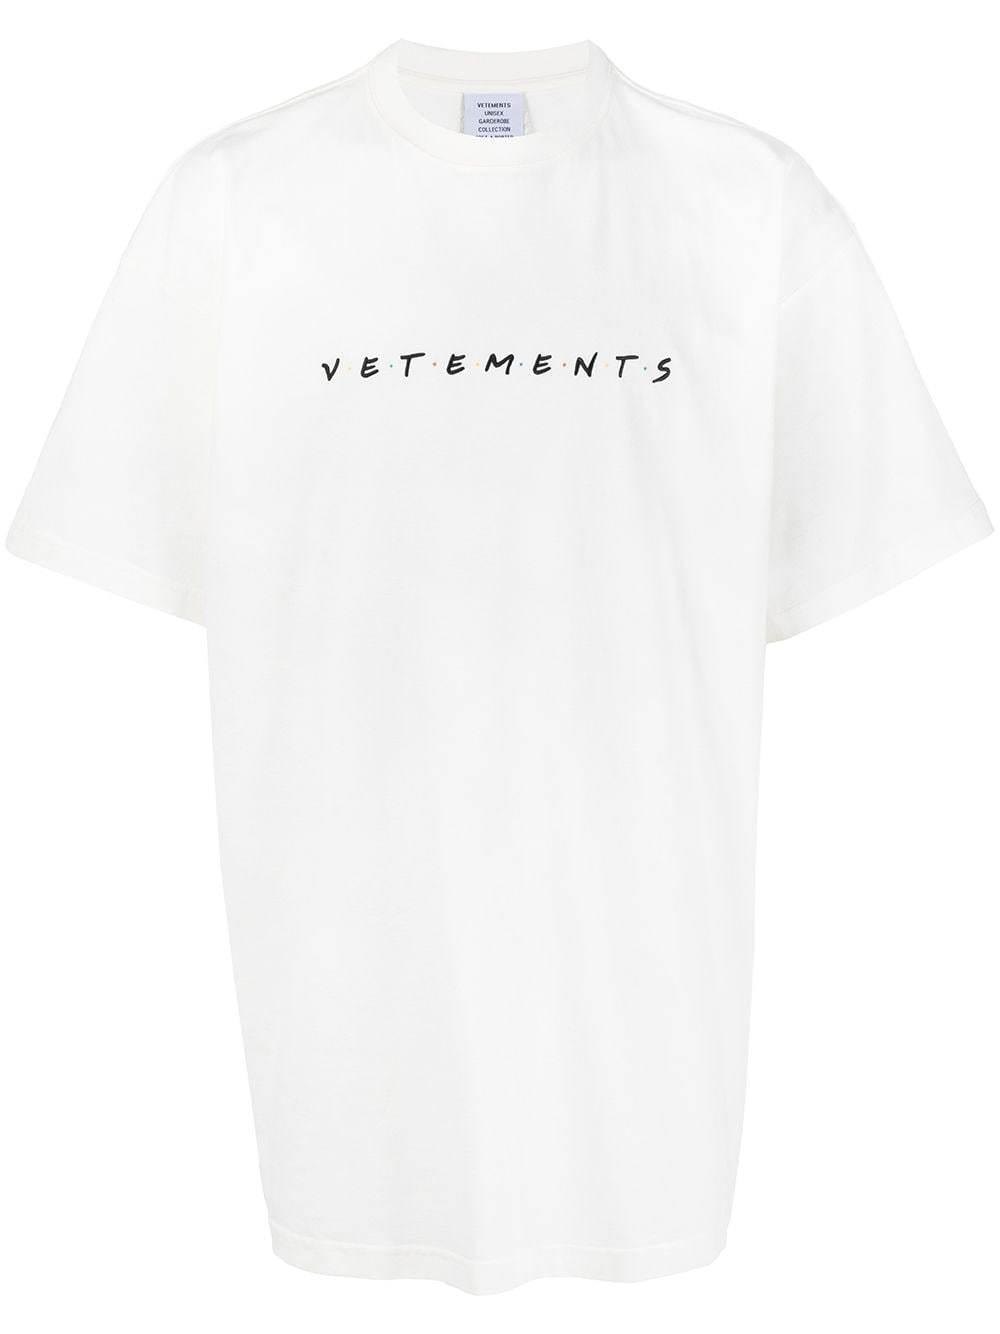 VETEMENTS Friendly Logo-Embroidered T-shirt White - Maison De Fashion